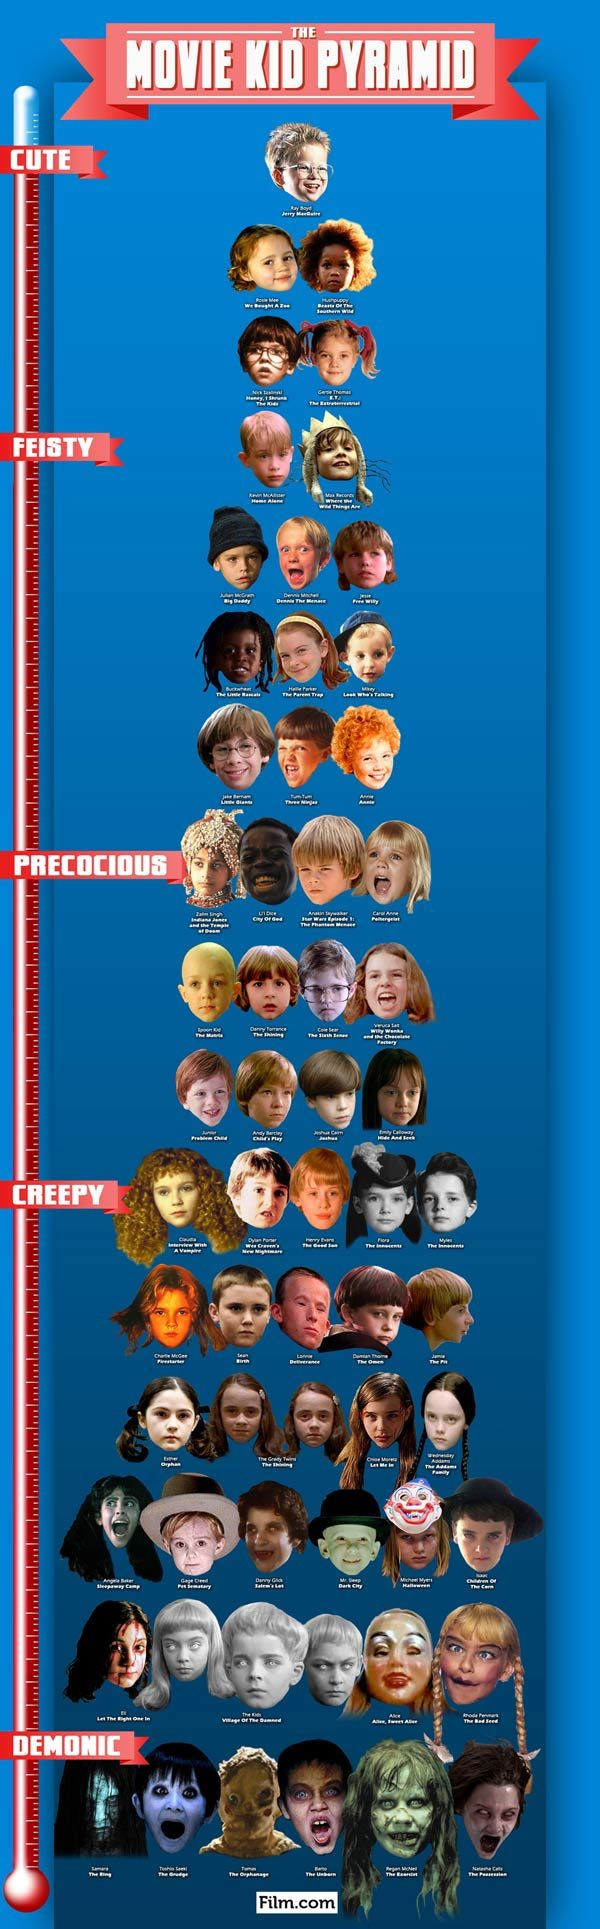 The Movie Kid Pyramid: From Cute to Demonic